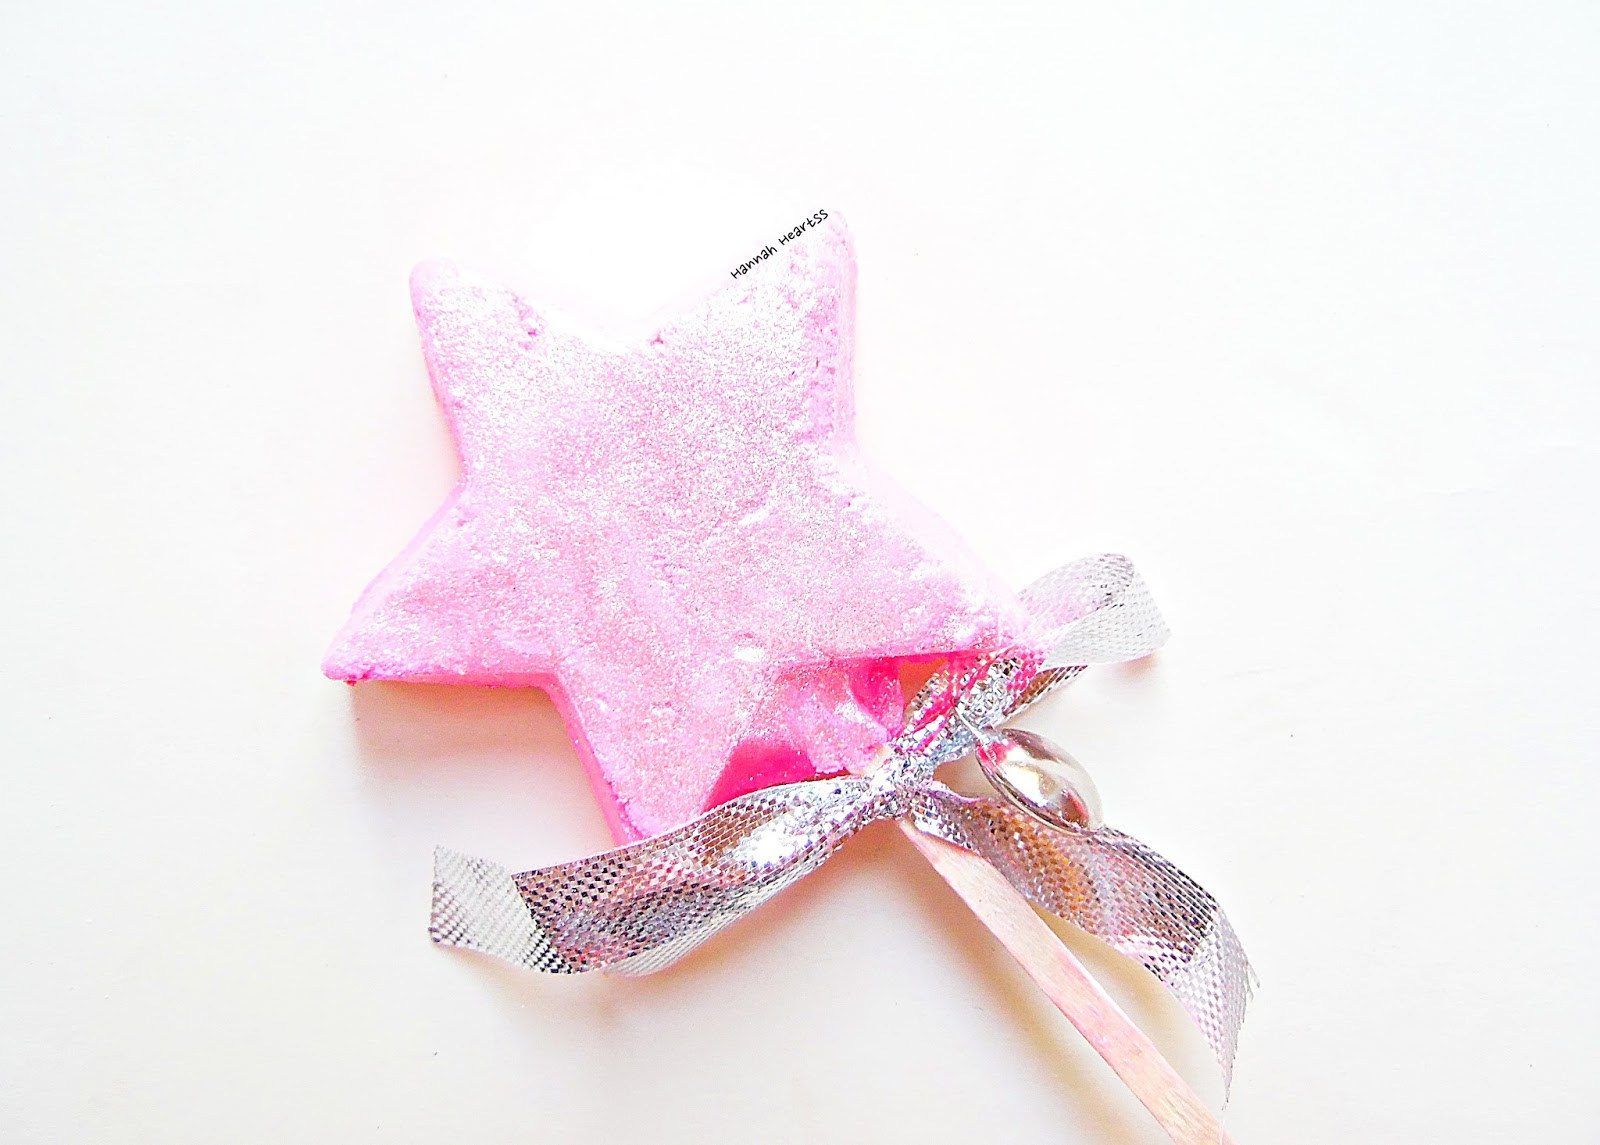 Lush Magic Wand